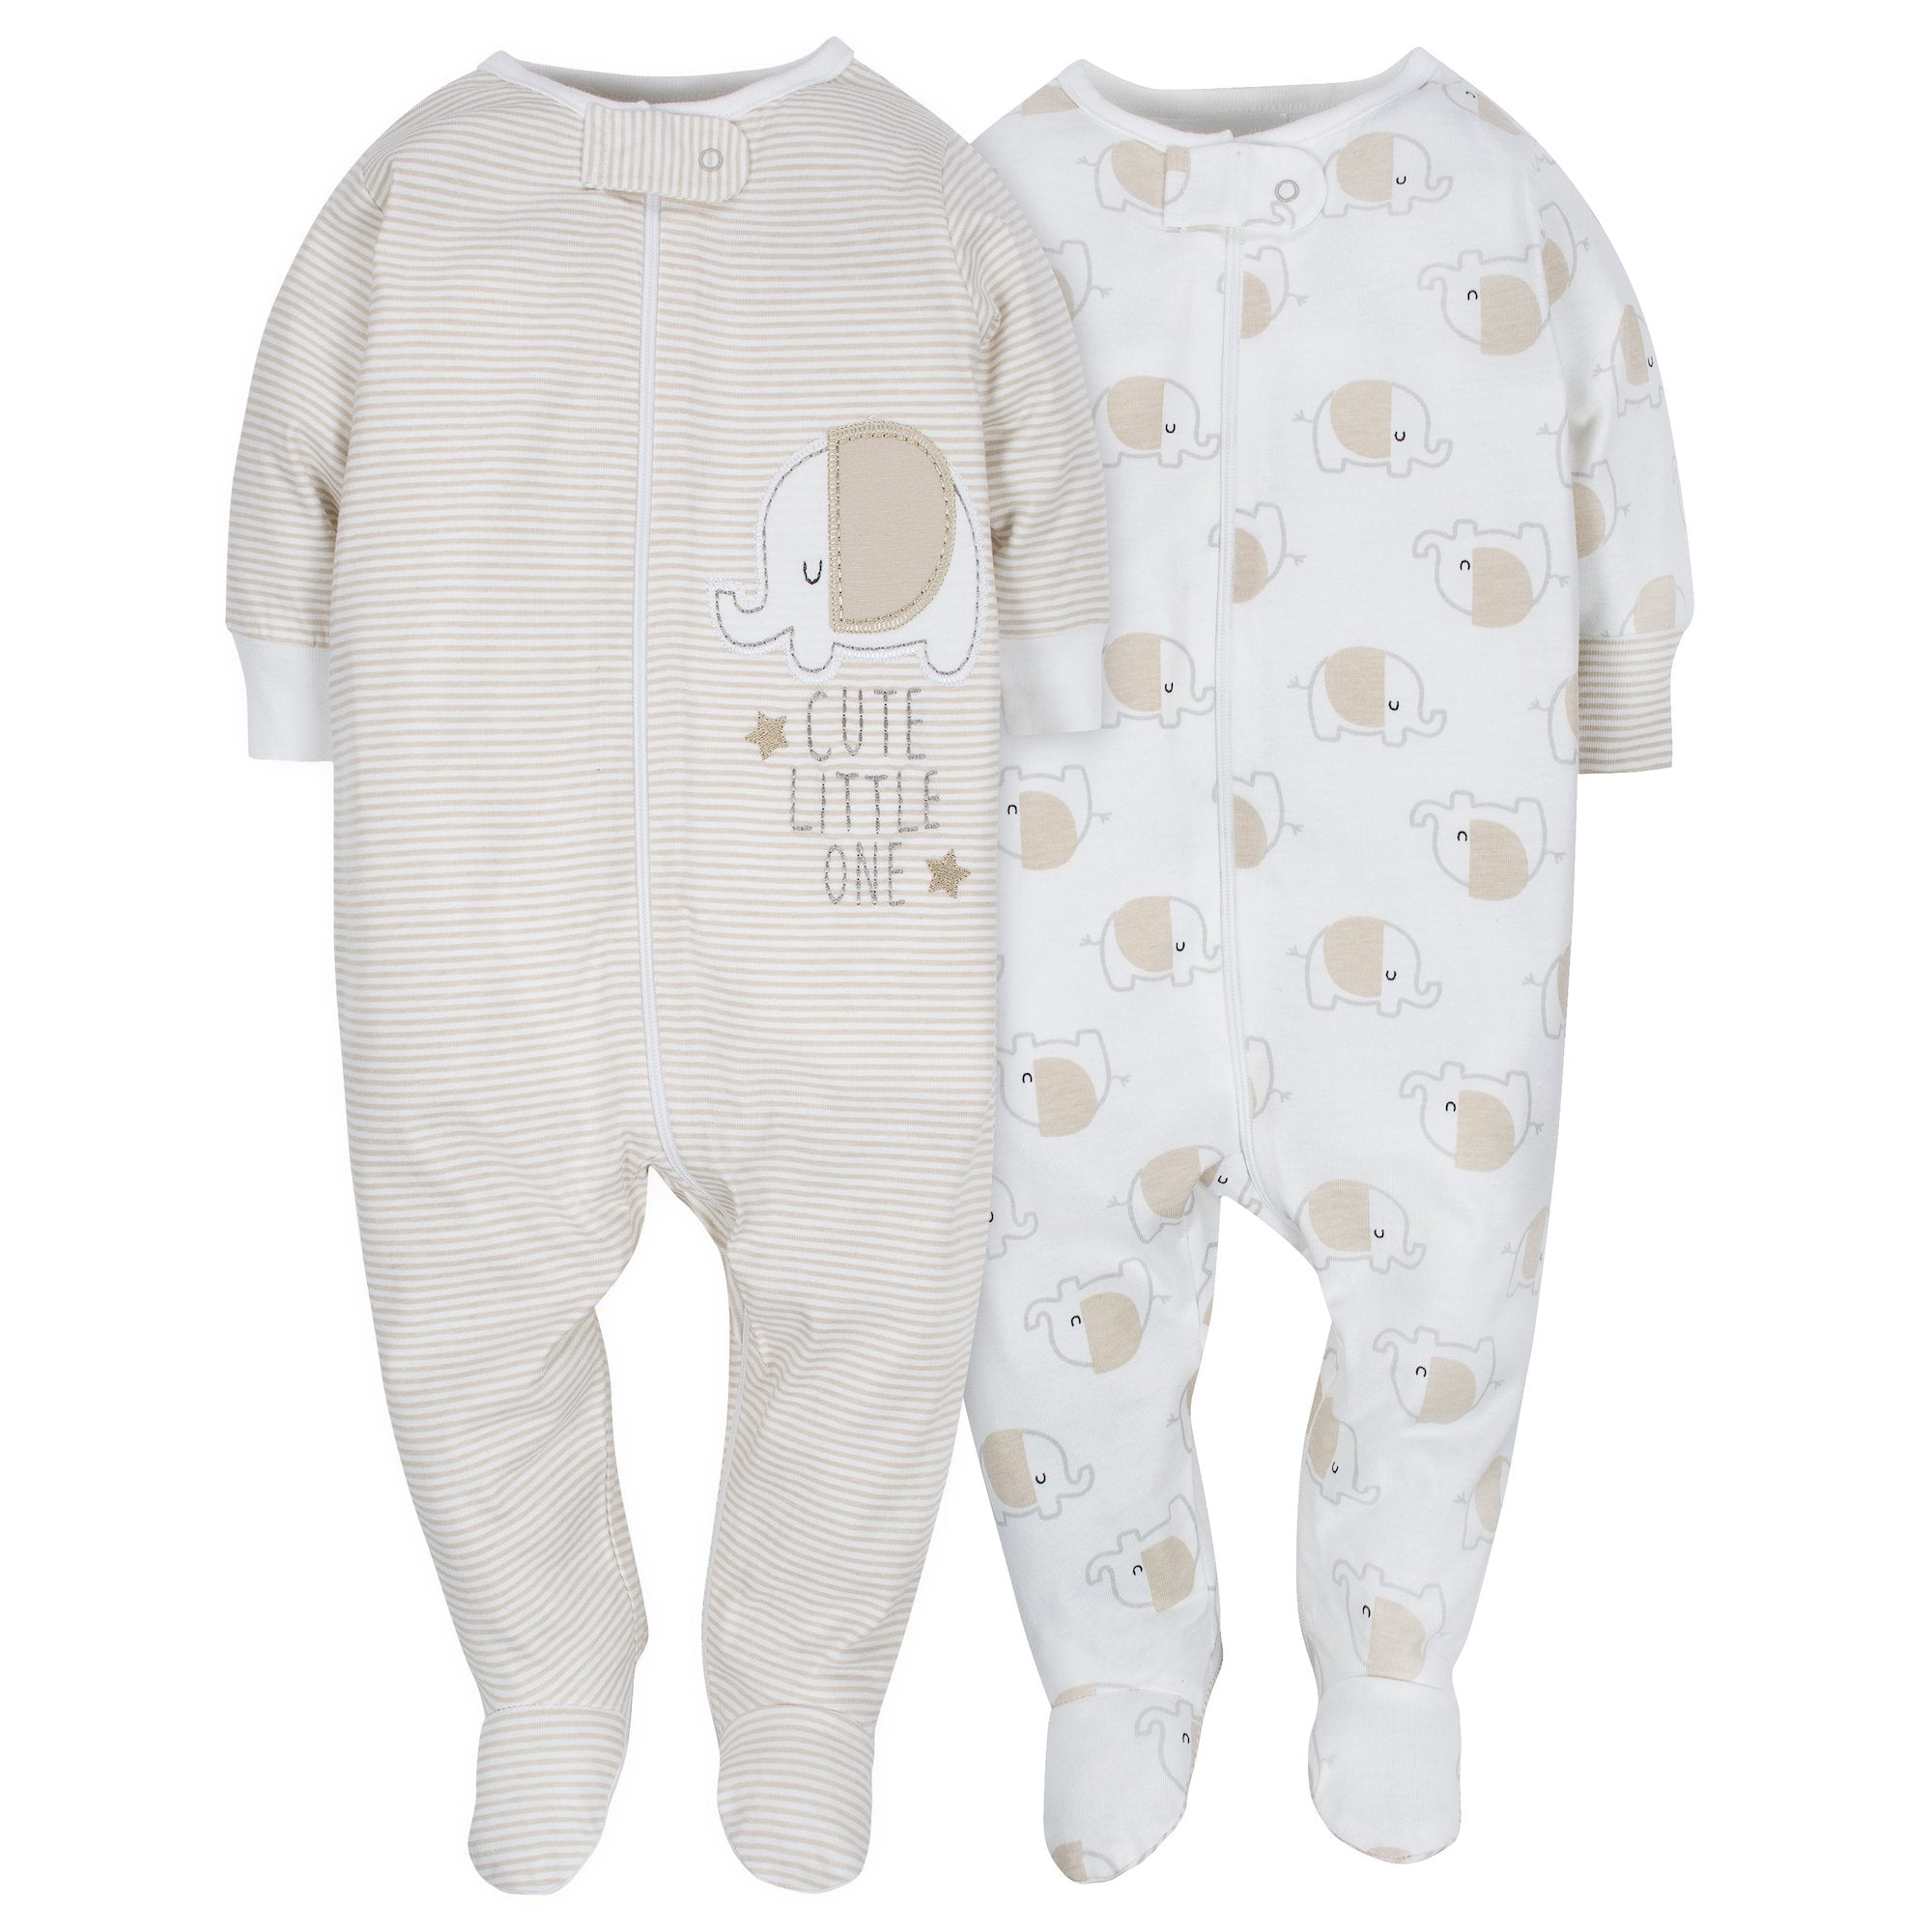 2-Pack Neutral Elephant Sleep N' Play-Gerber Childrenswear